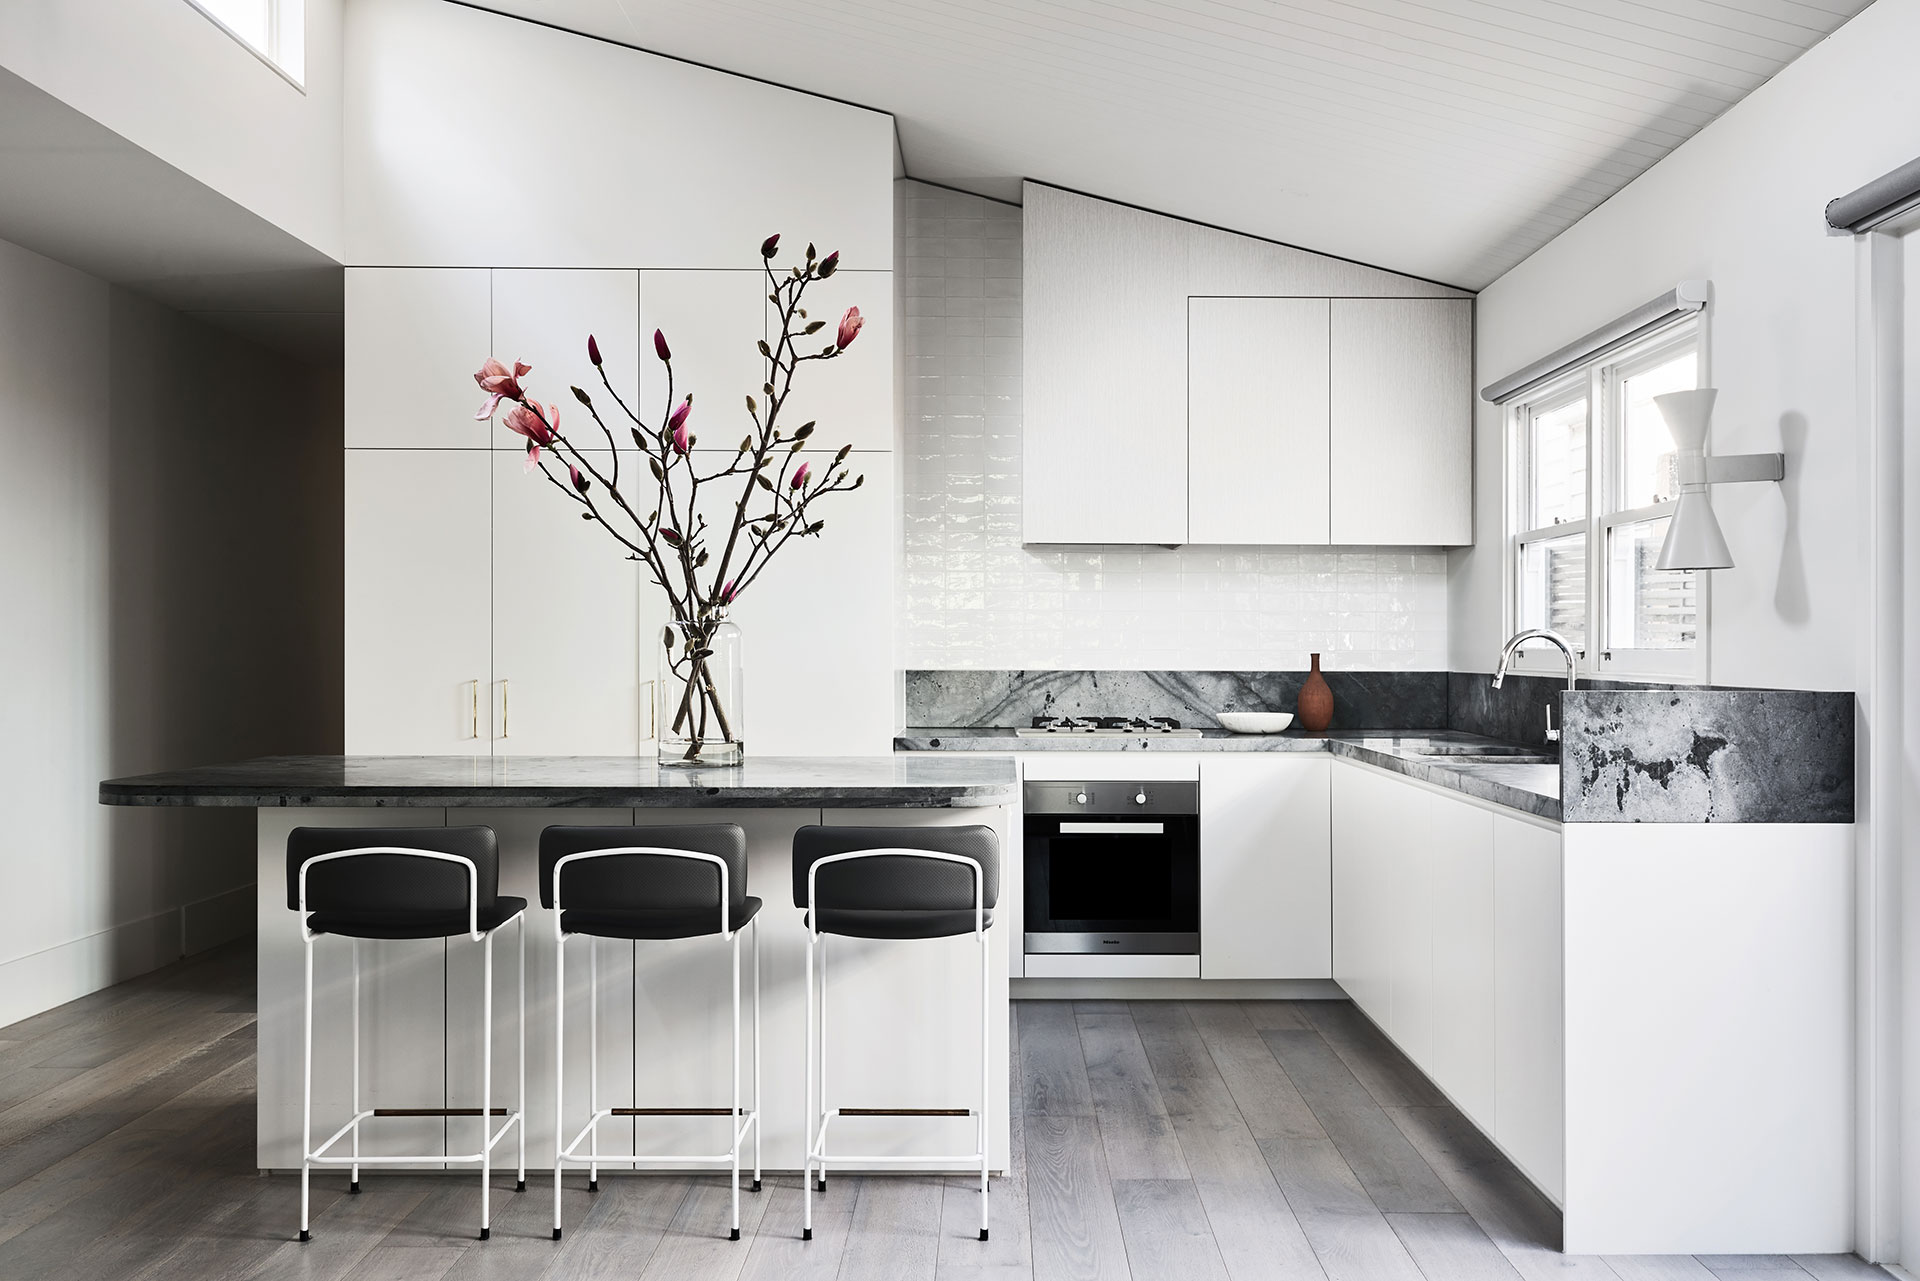 The kitchen of the Bleinhem Project by We Are Huntly.